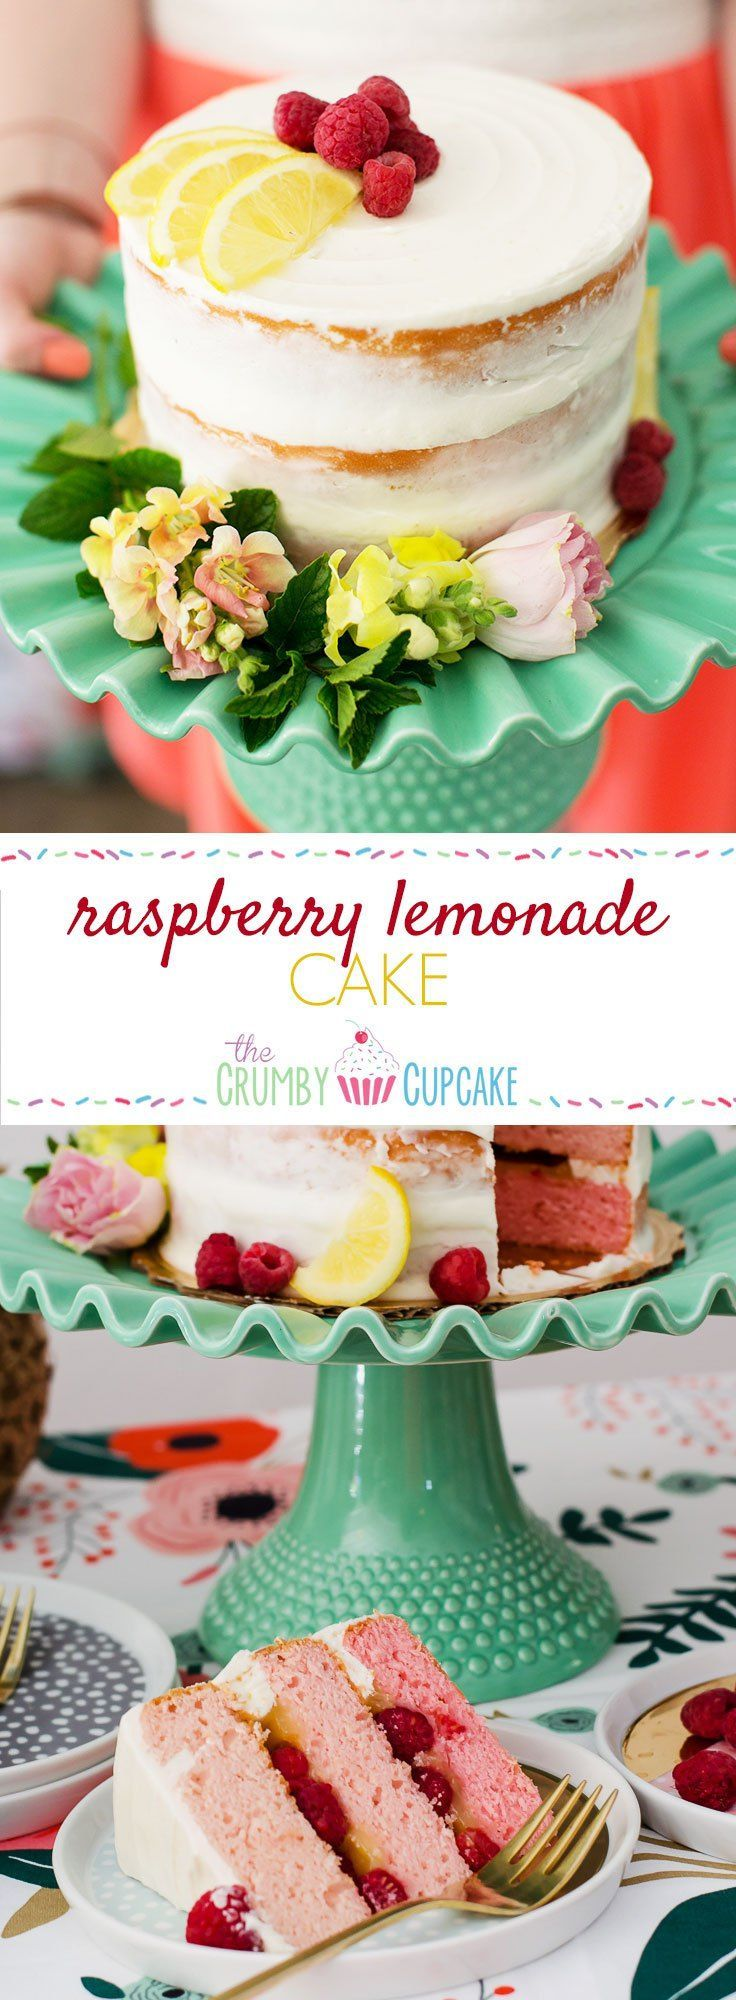 Why not surprise your friends and guests with a sweet & tart Raspberry Lemonade Cake for a #SummerFloralParty!